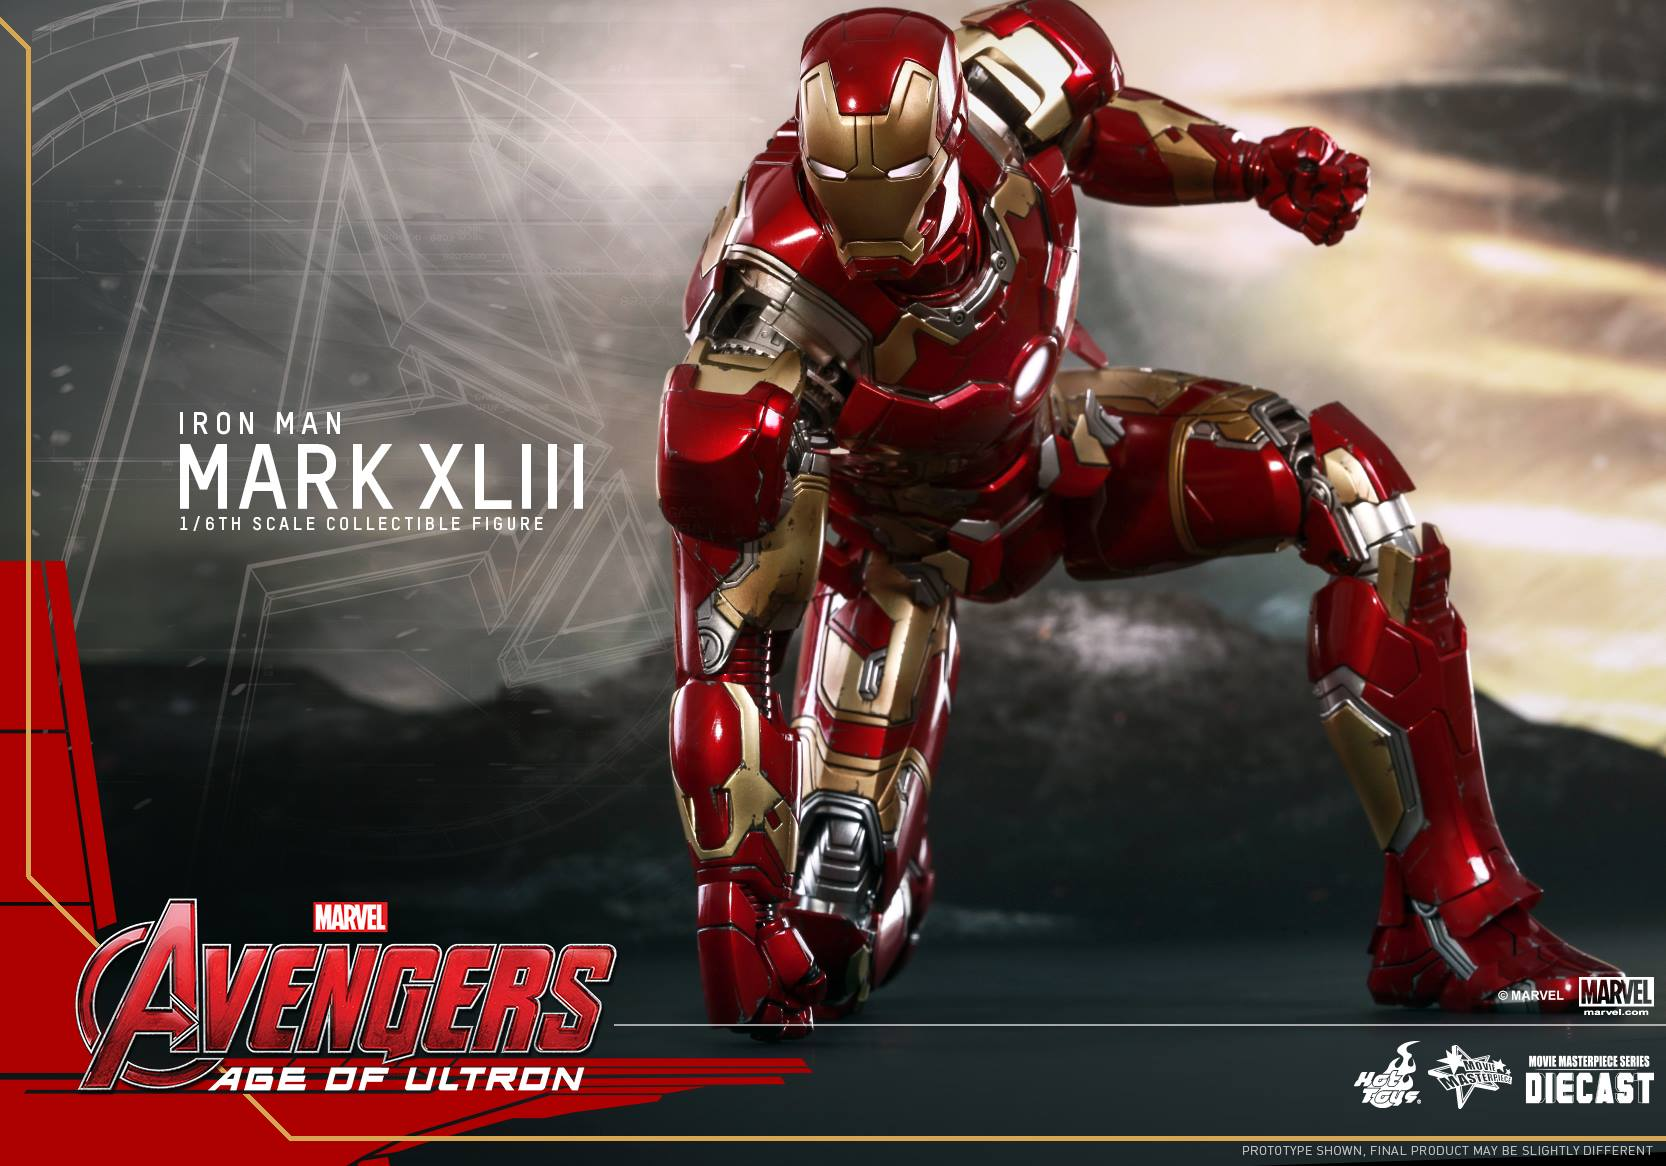 Avengers Age of Ultron Iron Man Helmet Avengers Age of Ultron Iron